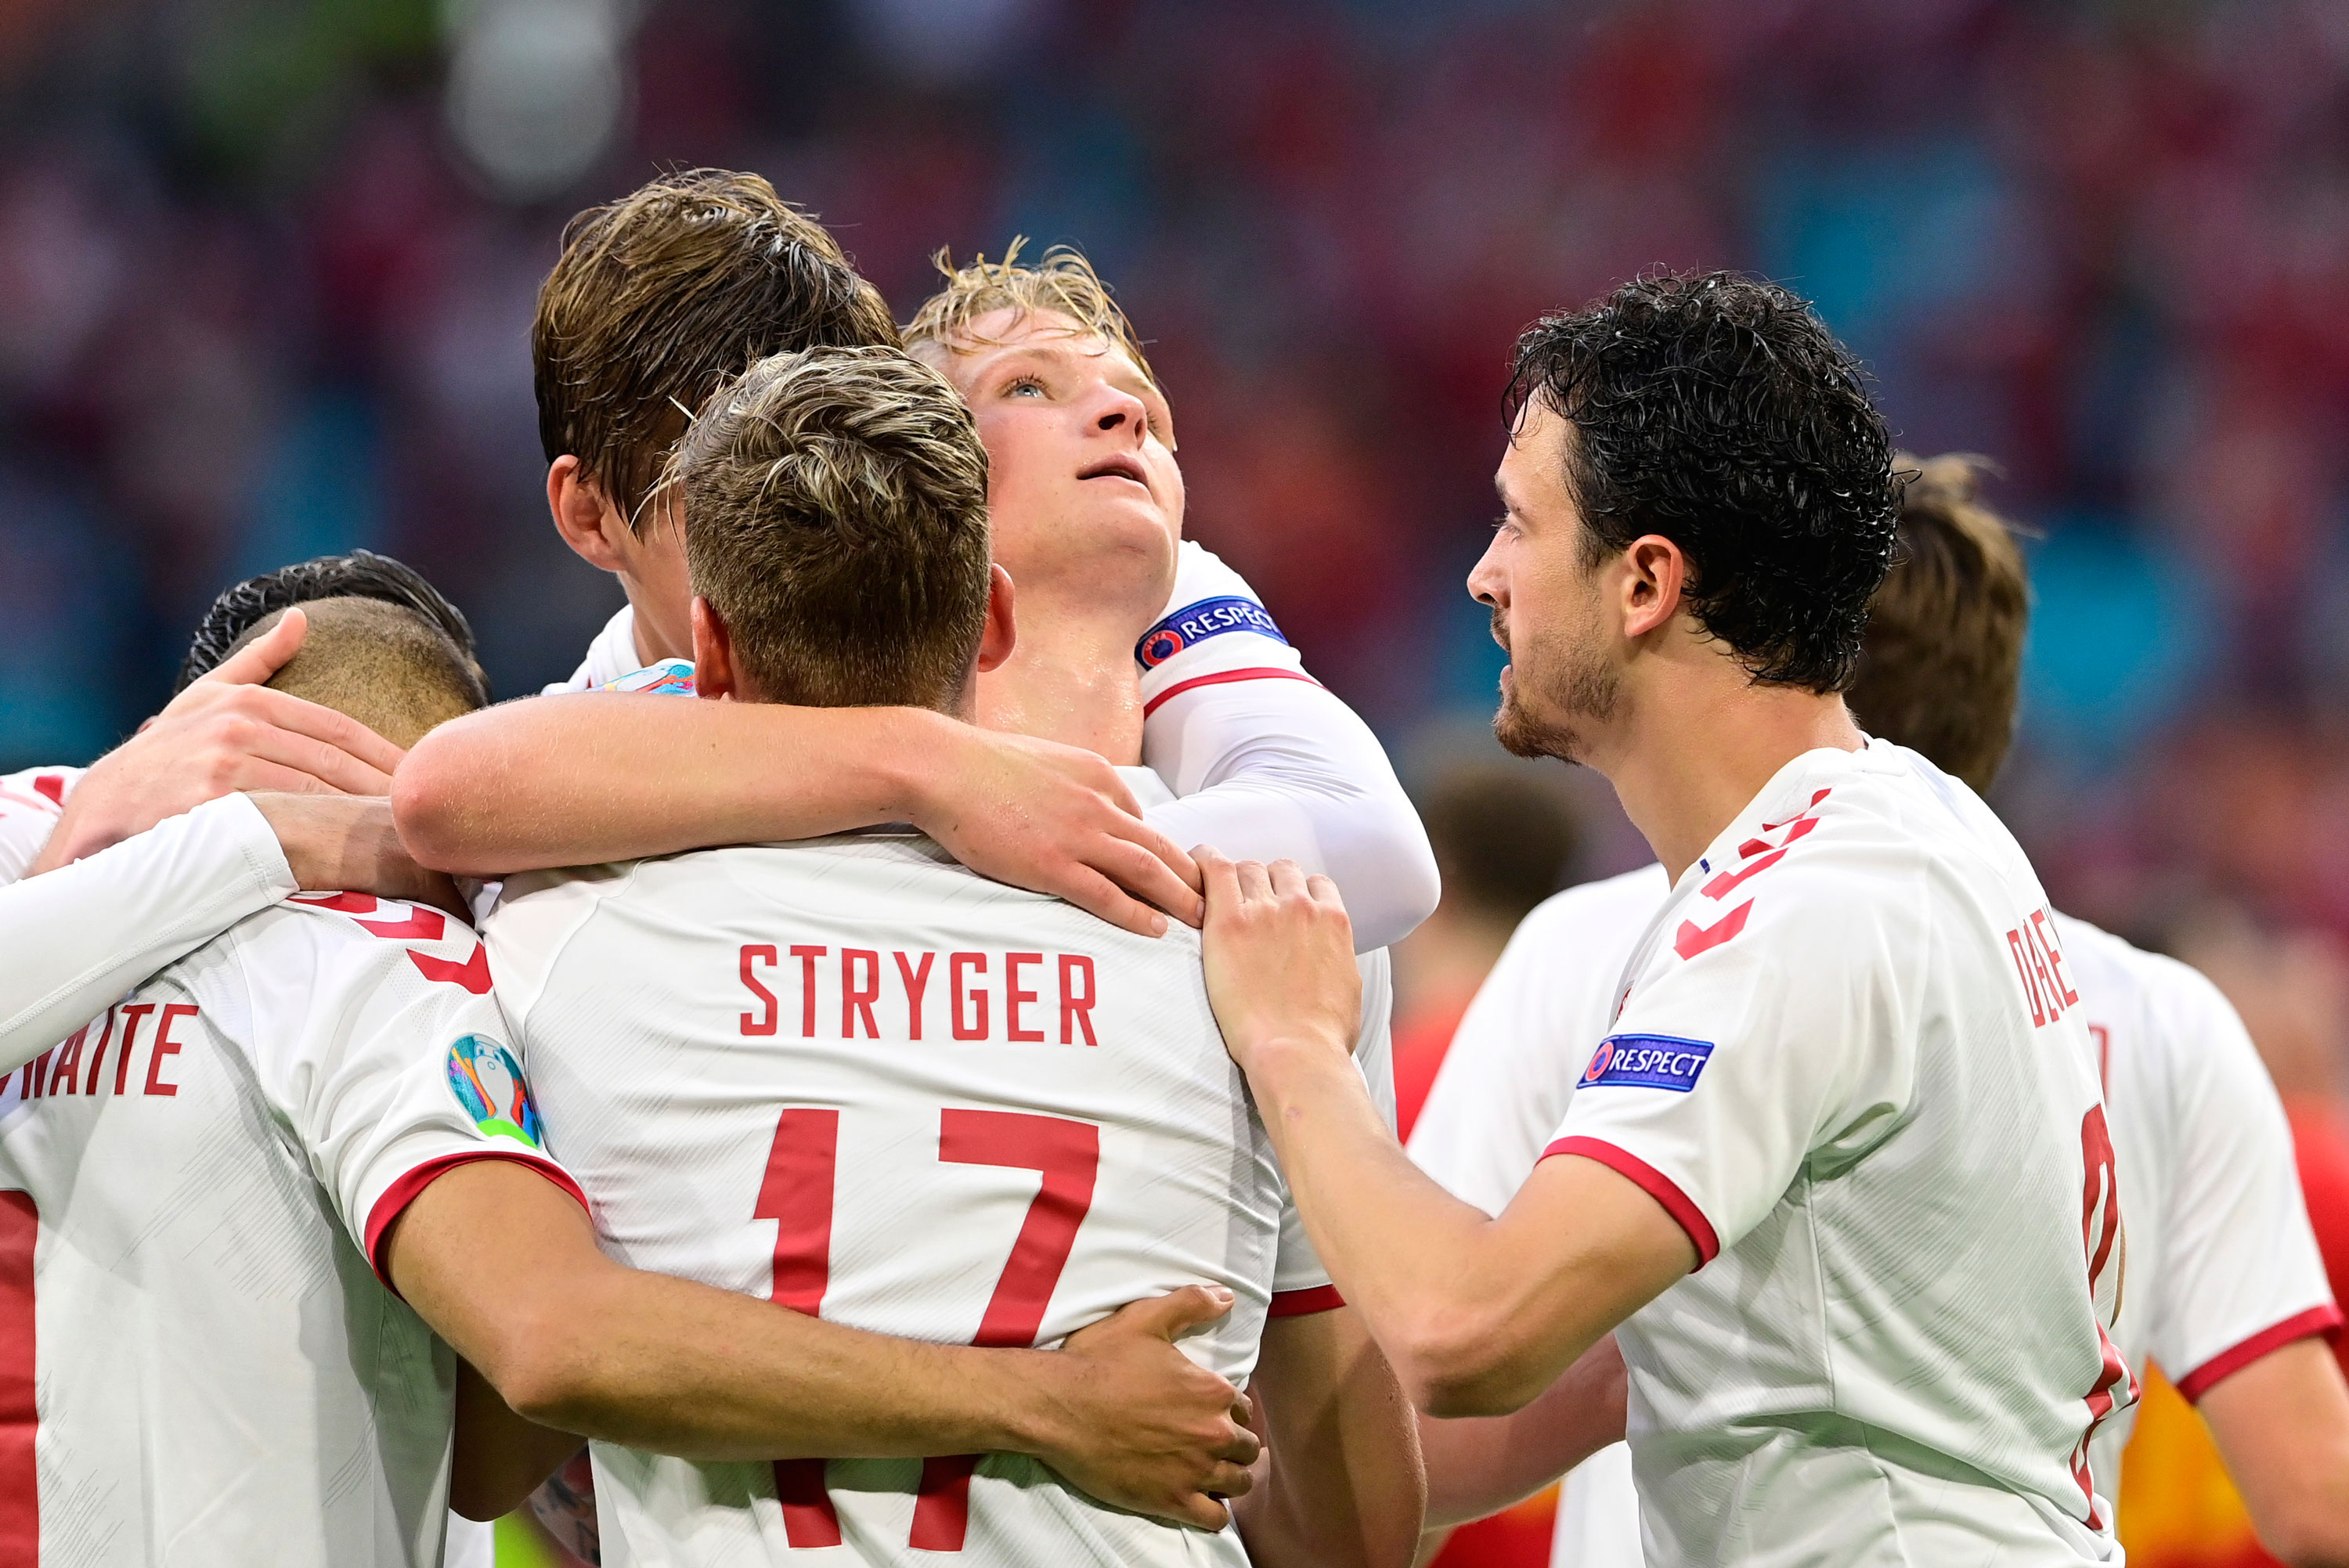 Denmark breezes past Wales into Euro 2020 quarterfinals with convincing win